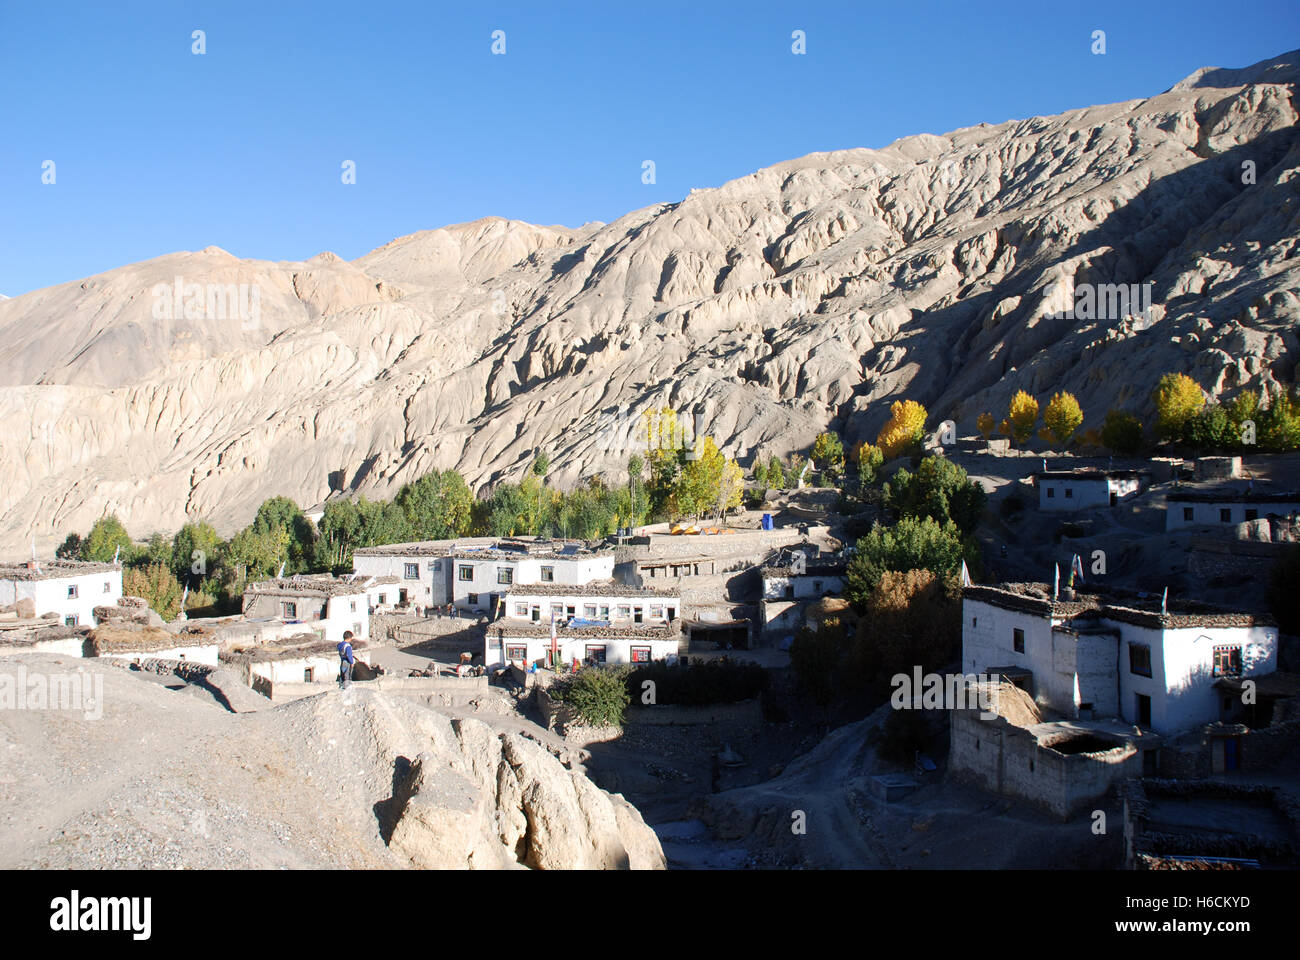 the village of Tangge in the Barren mountain landscape of the remote Damodar Himal in the Mustang region of Nepal - Stock Image